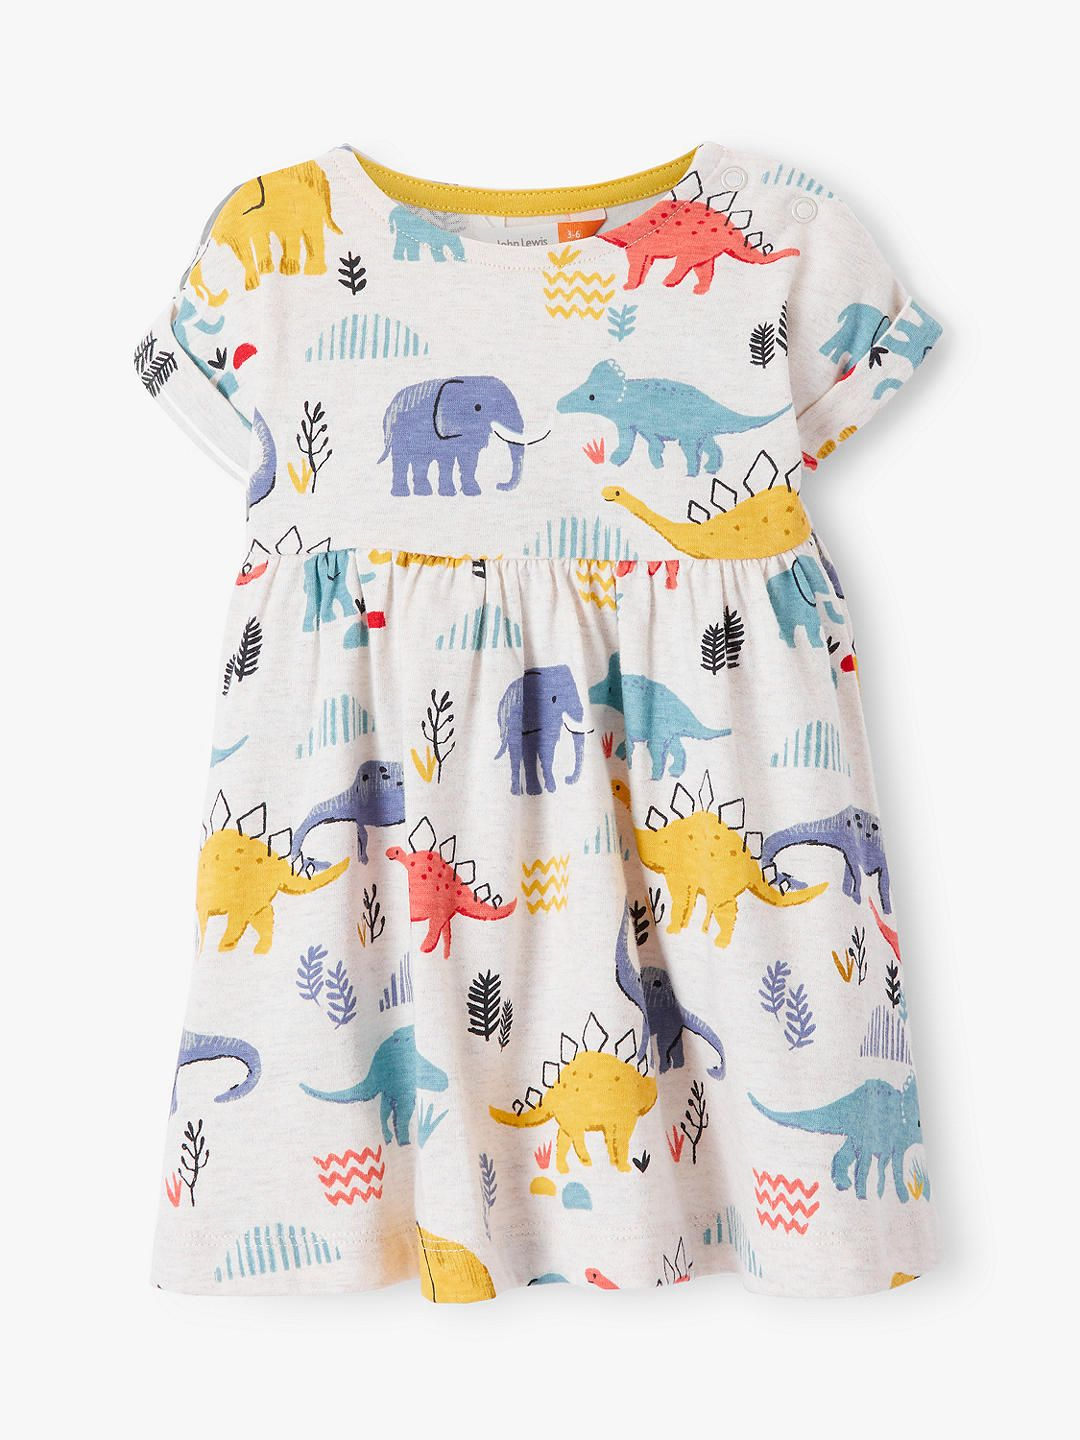 396fc6e9a BuyJohn Lewis & Partners Baby GOTS Organic Cotton Dinosaur Jersey Dress,  Multi, 6-9 months Online at johnlewis.com